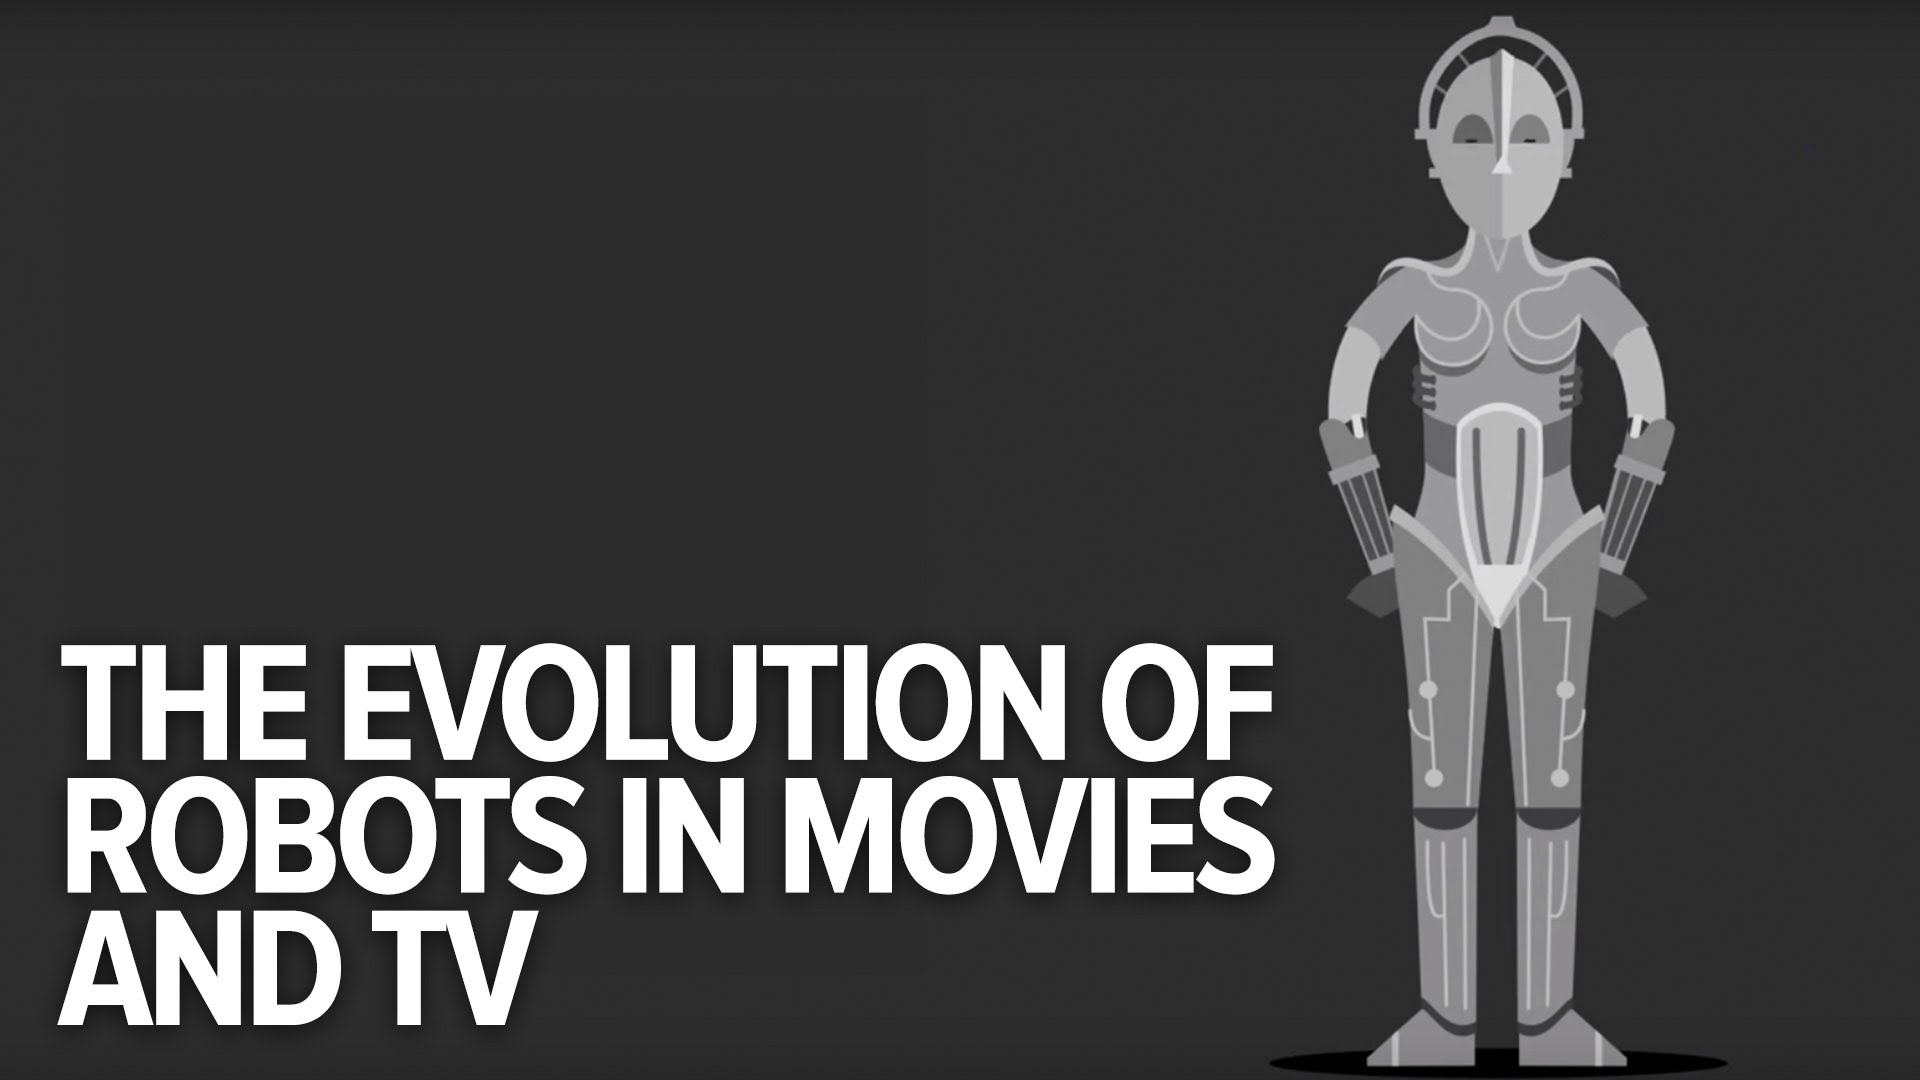 The evolution of animation